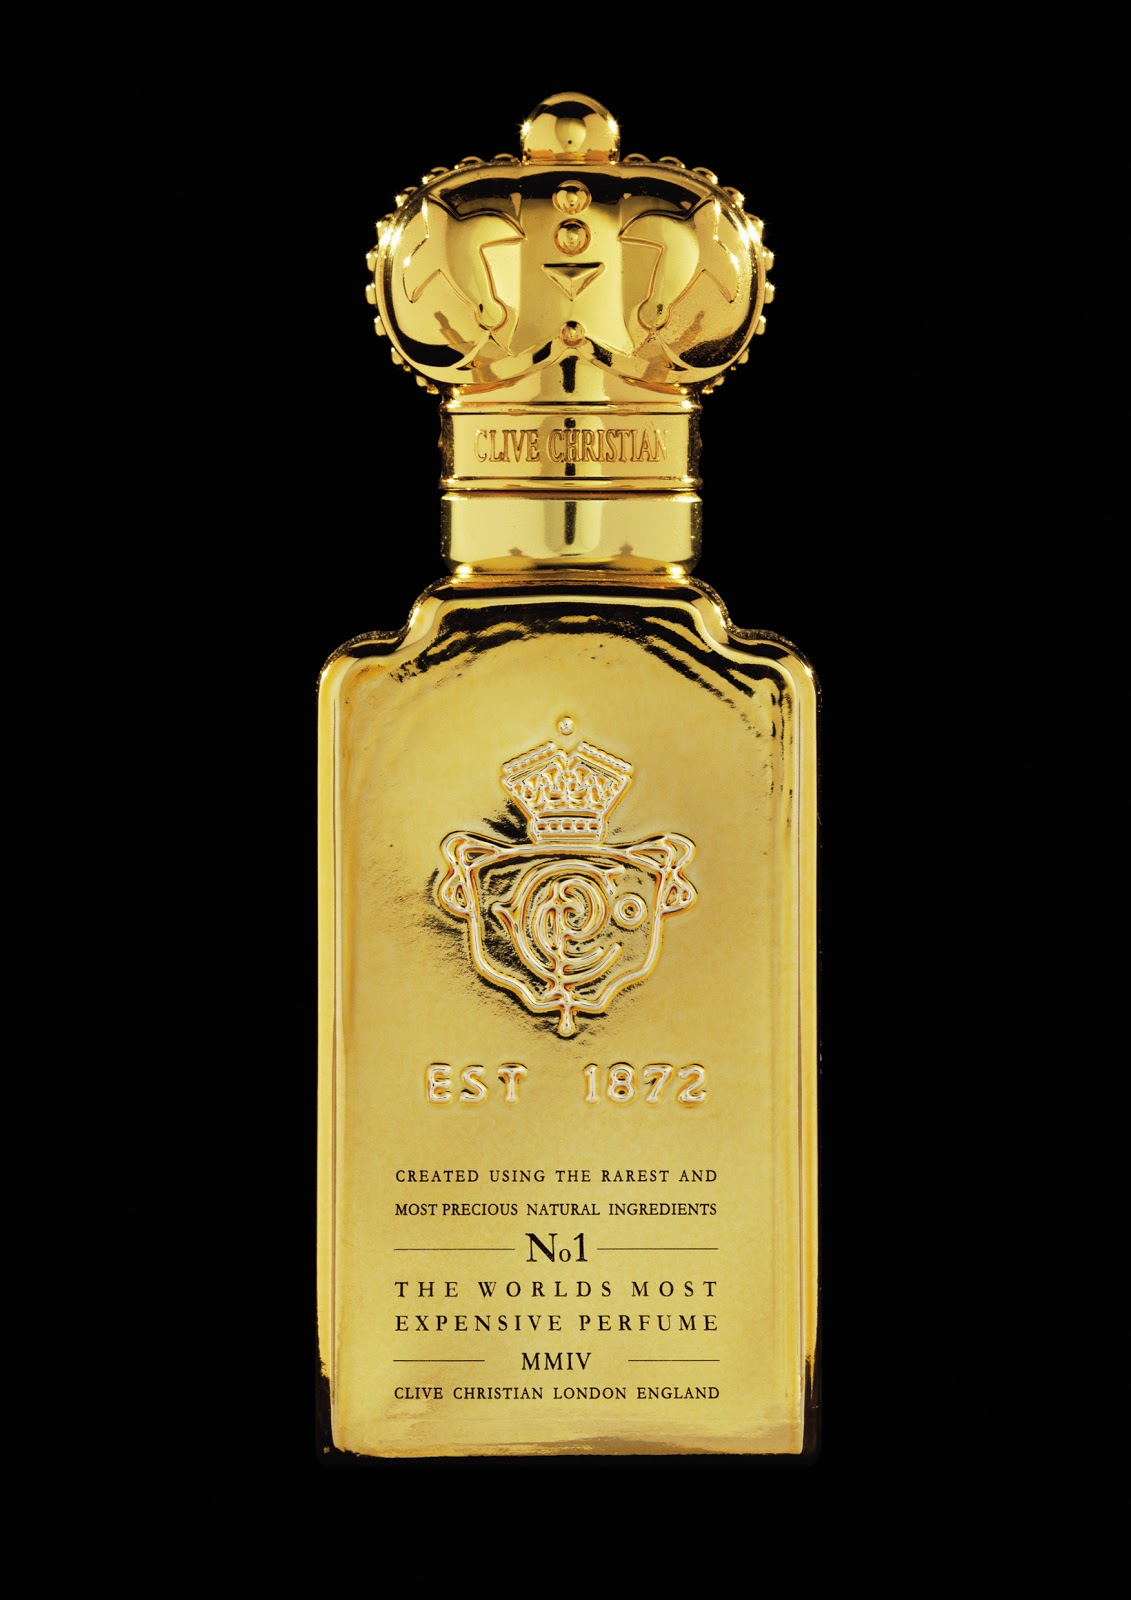 The Scent: Imperial Majesty | Egle Graziani